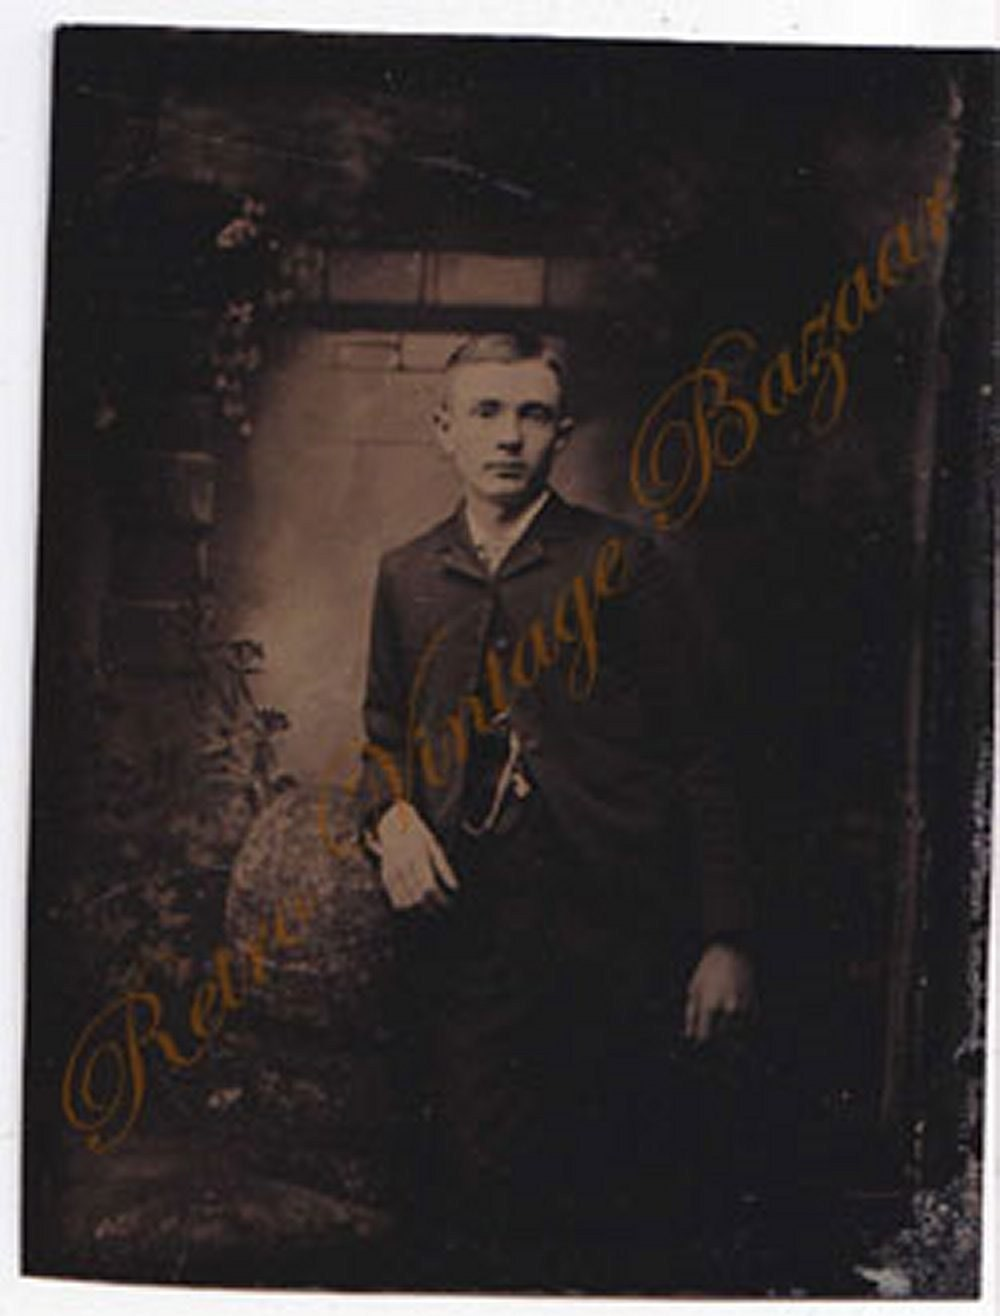 Tintype Photo Circa 1800s Suited Man